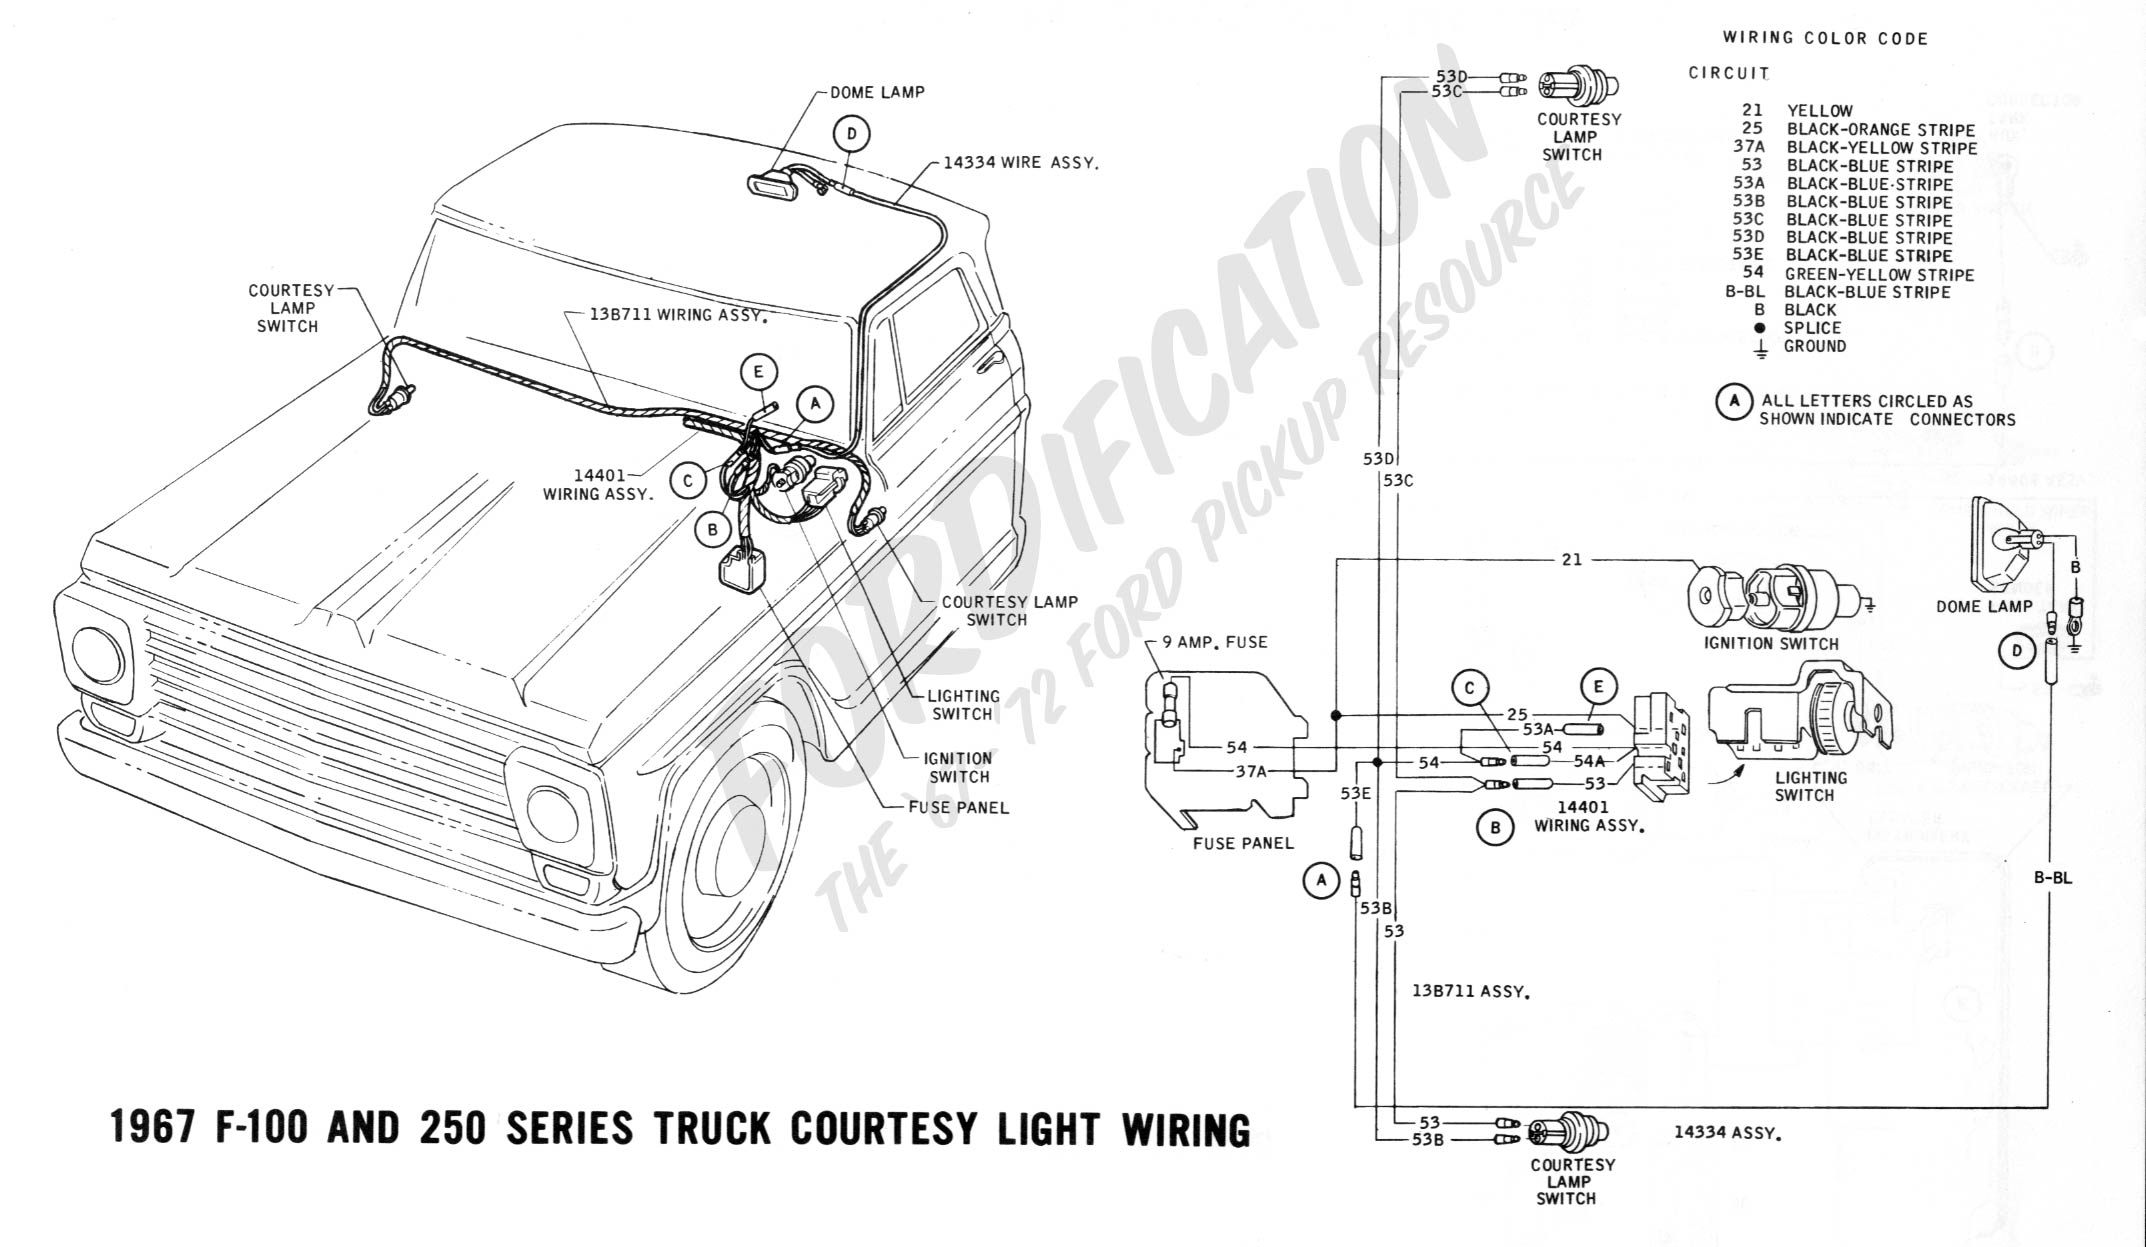 wiring 1967courtesylight electrical wiring diagram of ford f100 all about wiring diagrams 1970 Ford F-250 Wiring Diagram at soozxer.org